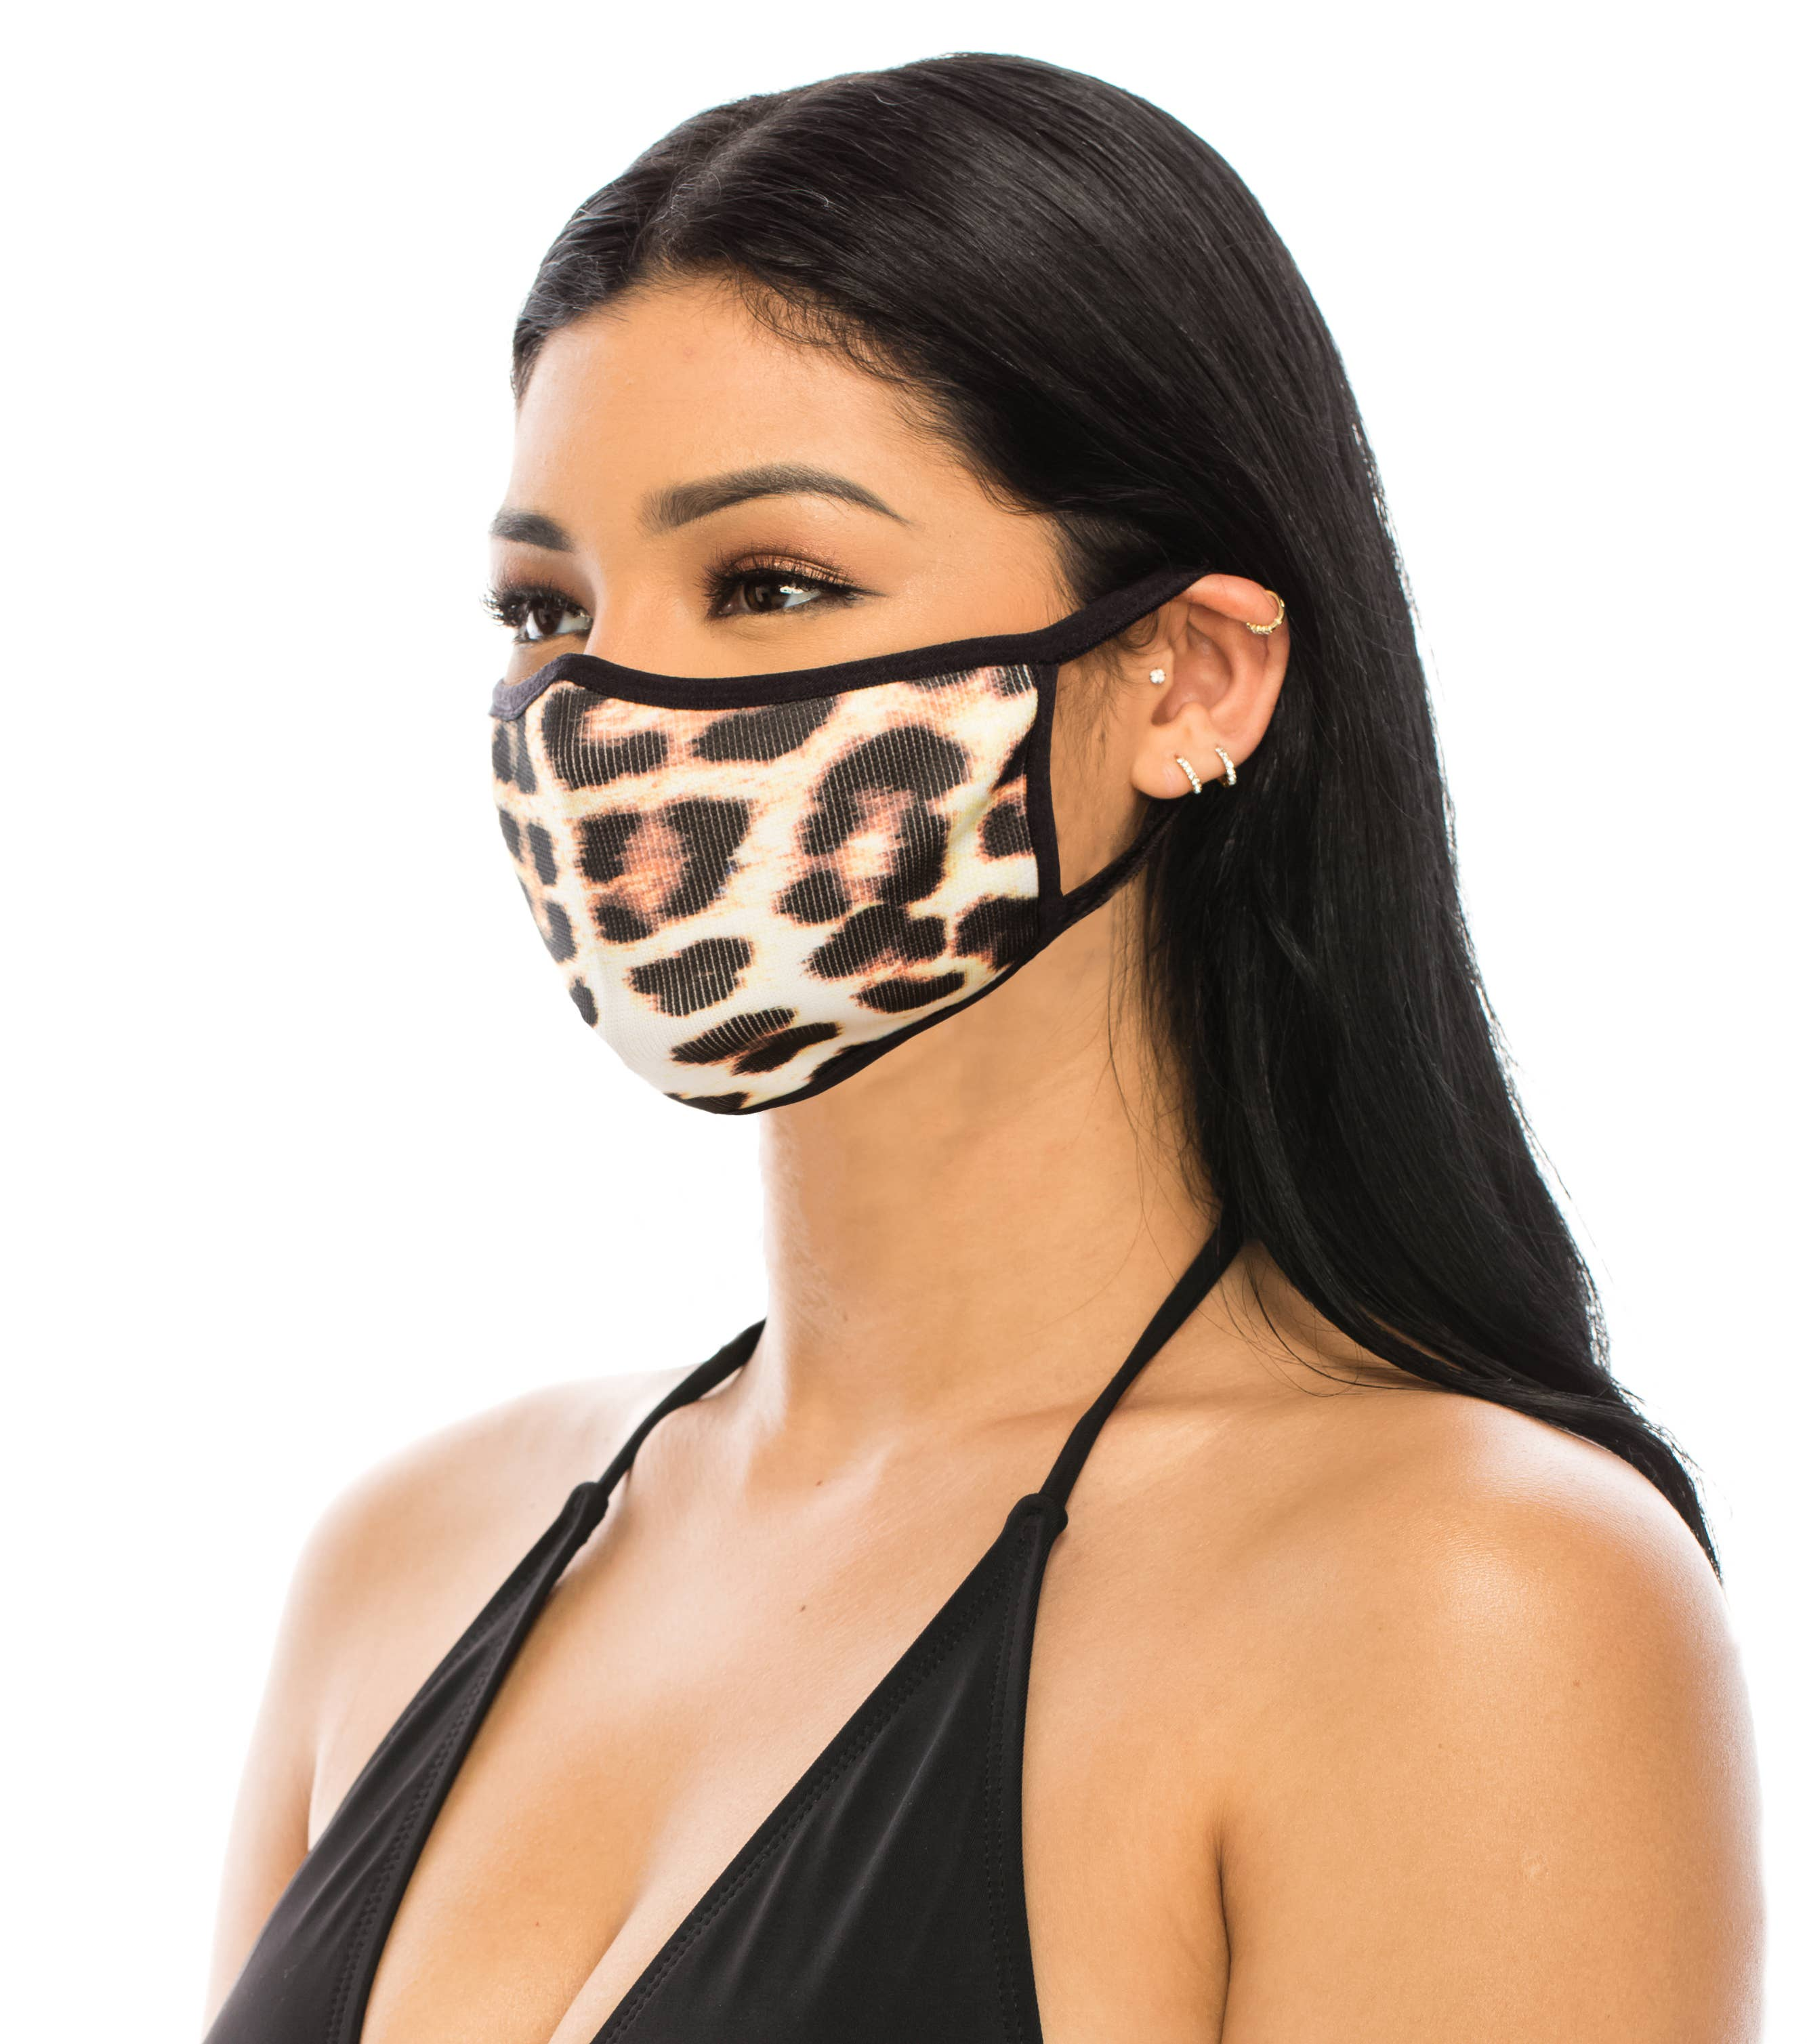 Renee C. - REUSABLE AND WASHABLE MASK